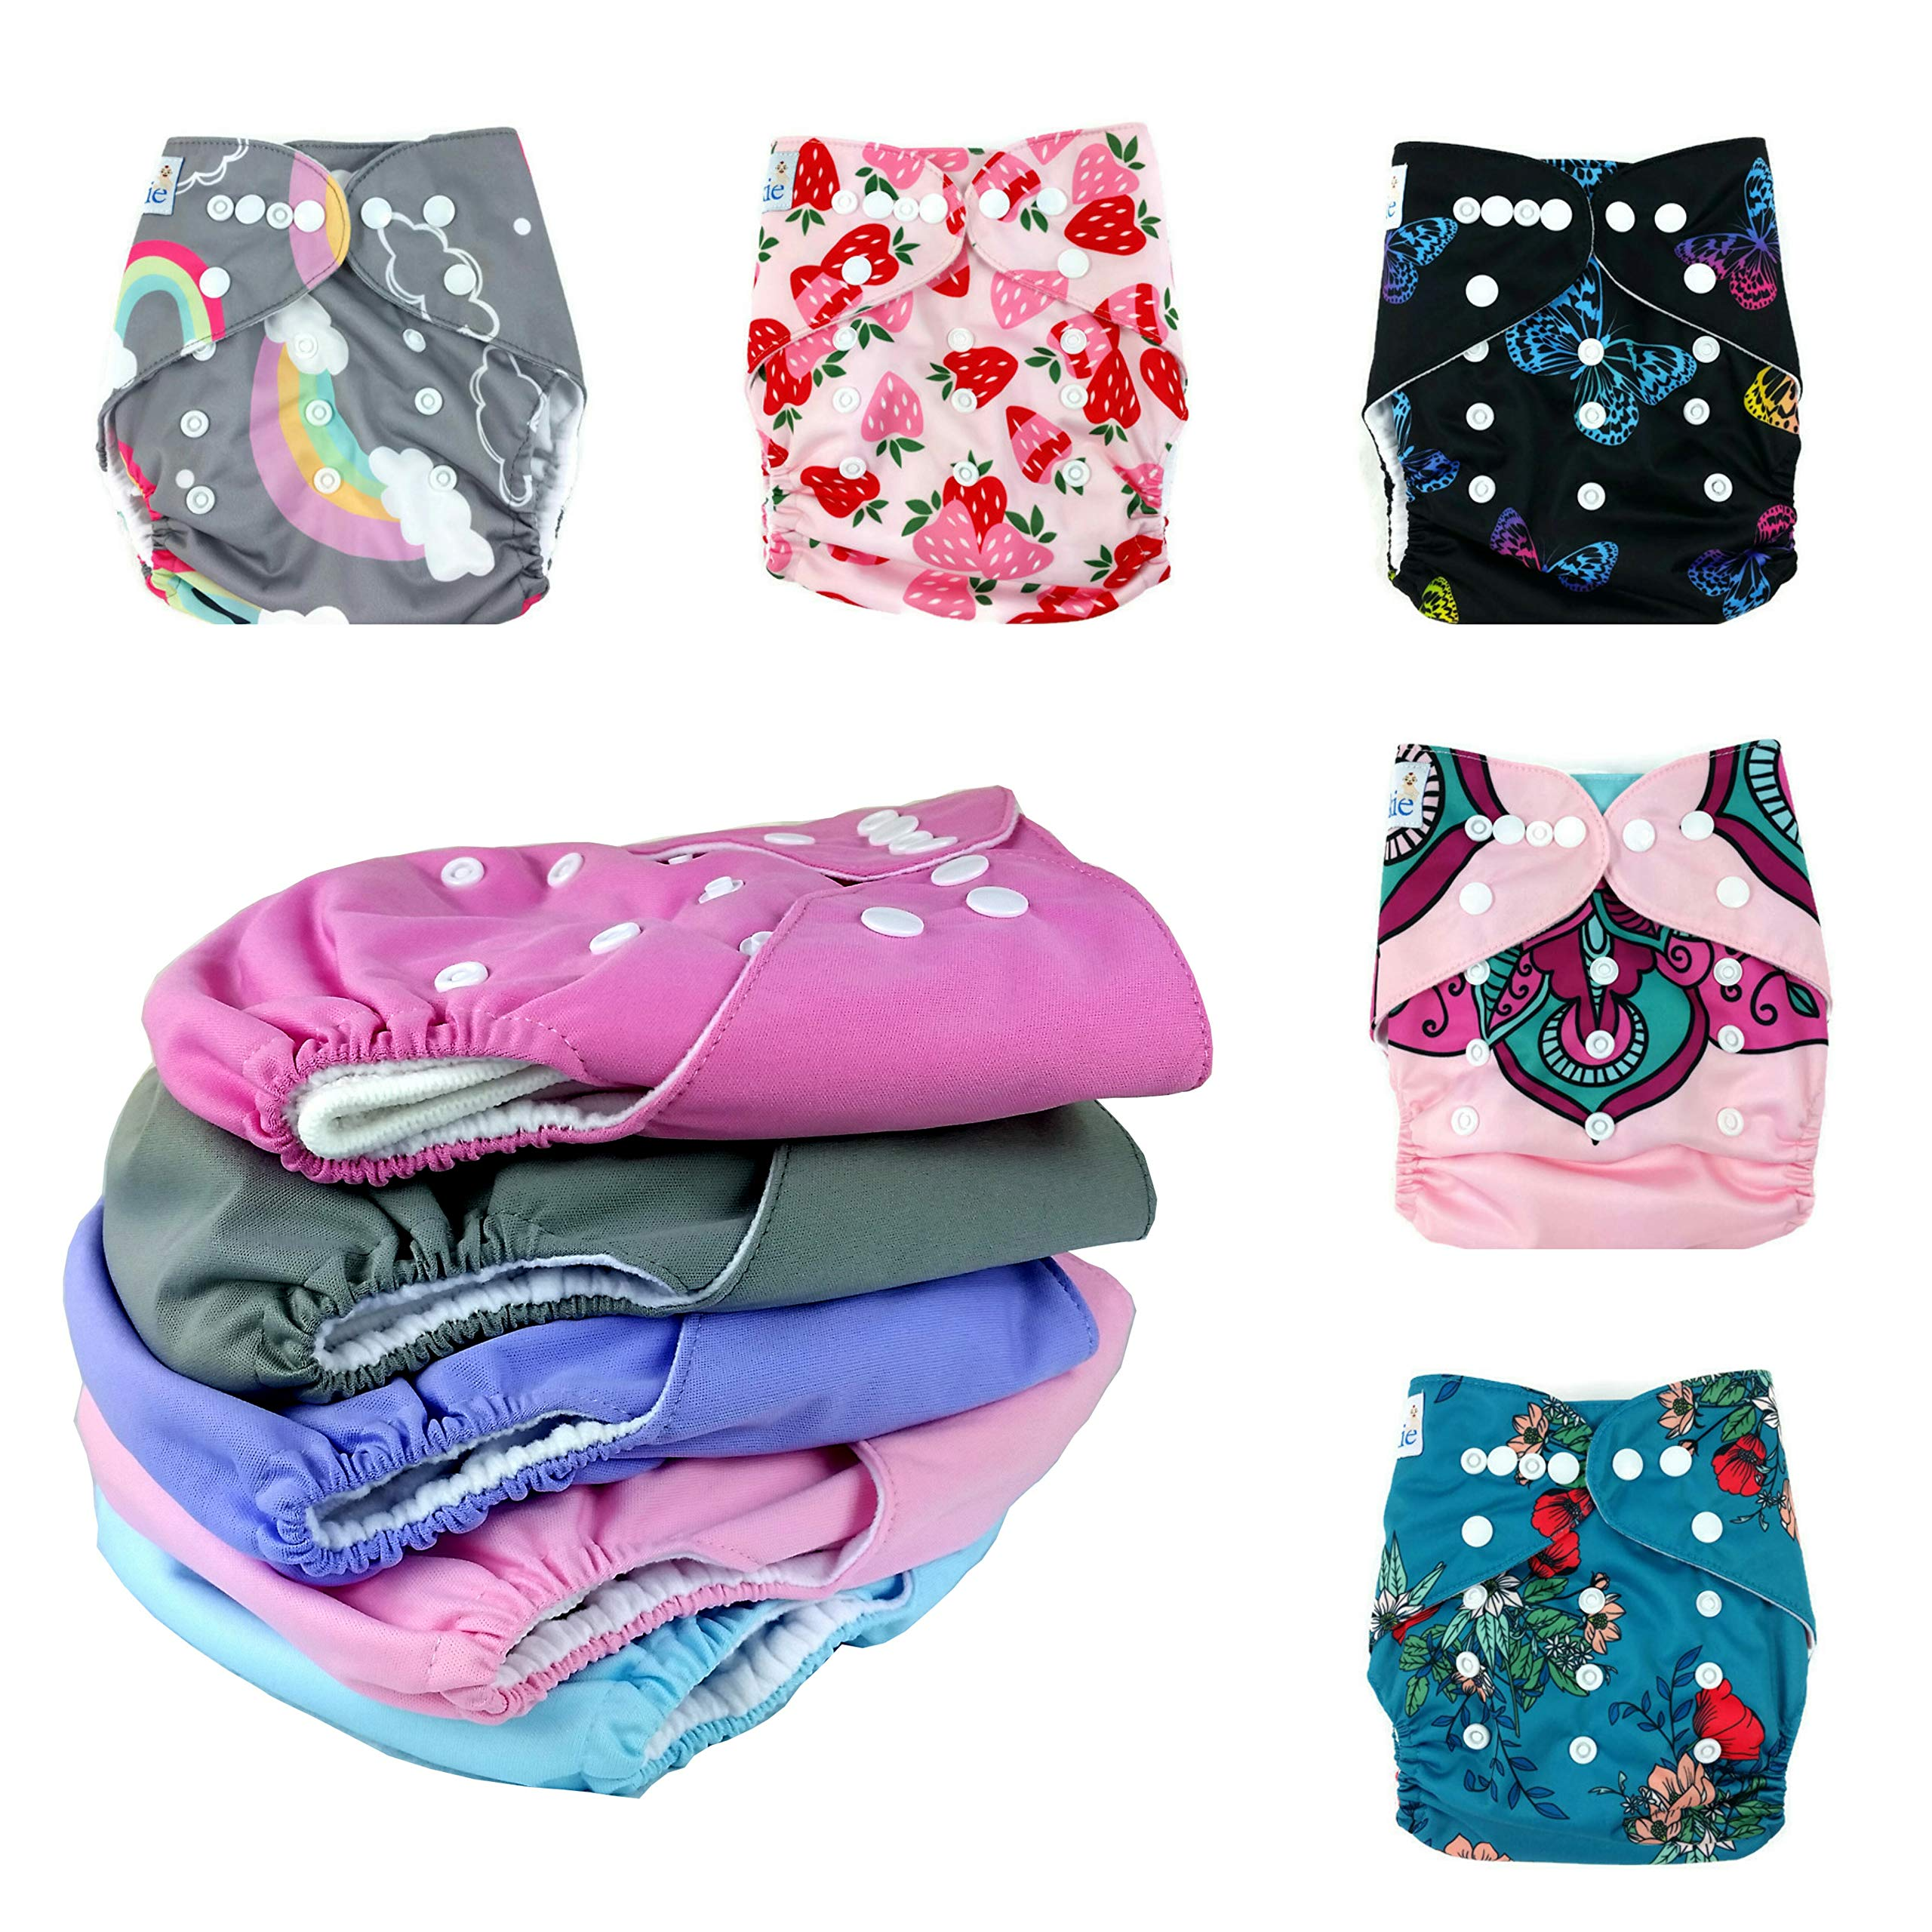 Nakie Baby Cloth Diapers| Pink Floral Girl Theme| 10 Diaper Set | 3-Layer Microfiber | Adjustable| Fits from 8lbs to 35lbs| Eco-Friendly| Washable| Reusable| Ultra-Soft